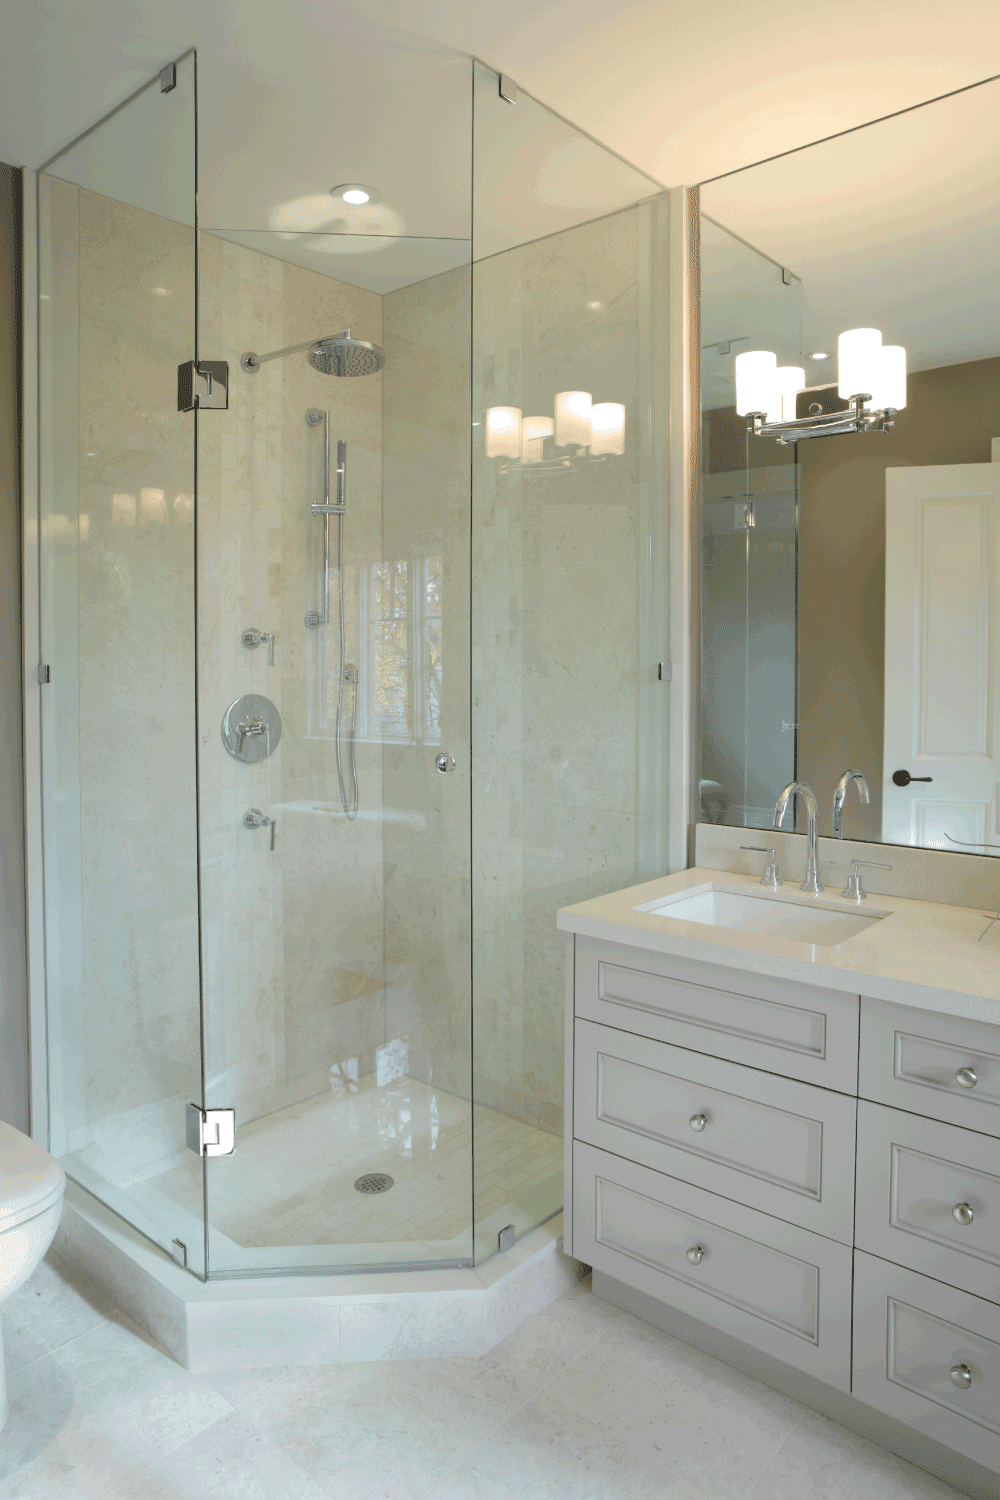 luxury bathroom with glass dividers and shower base